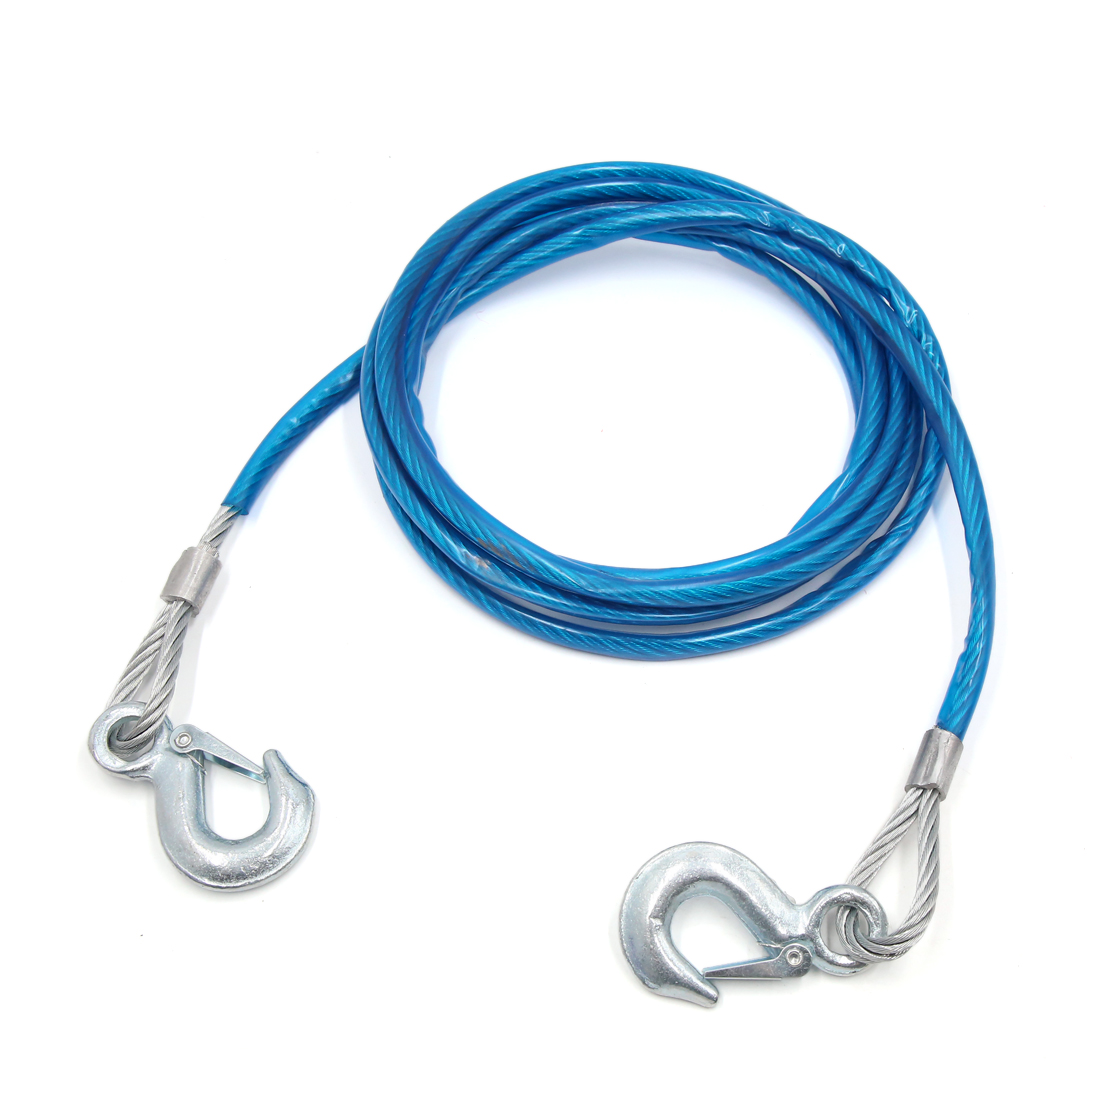 4M x 10mm 5 Tons Car Tow Strap Truck Steel Cable Towing Winch Snatch Rope Blue